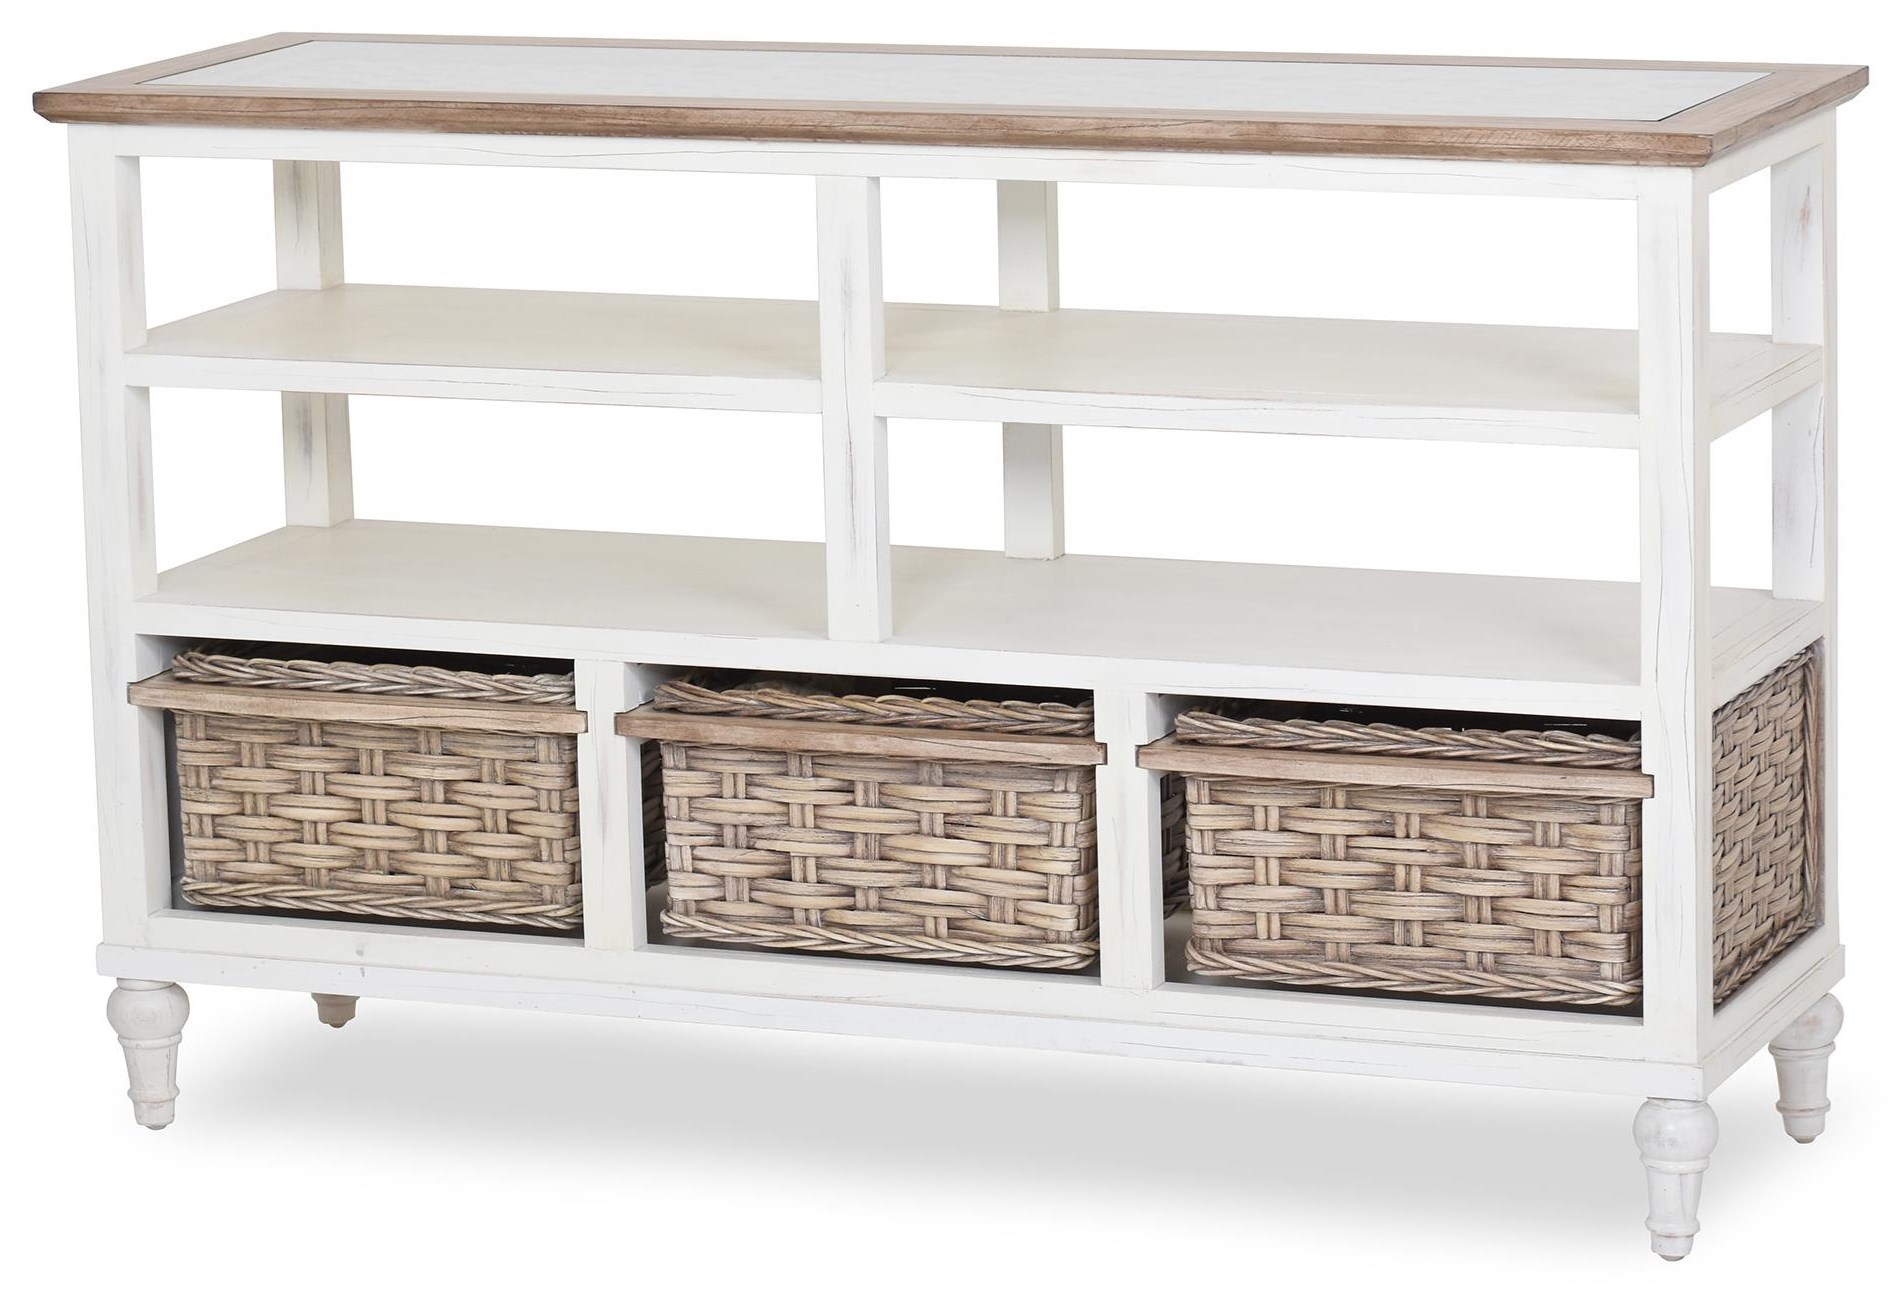 island breeze entertainment center by Sea Winds Trading Company at Johnny Janosik